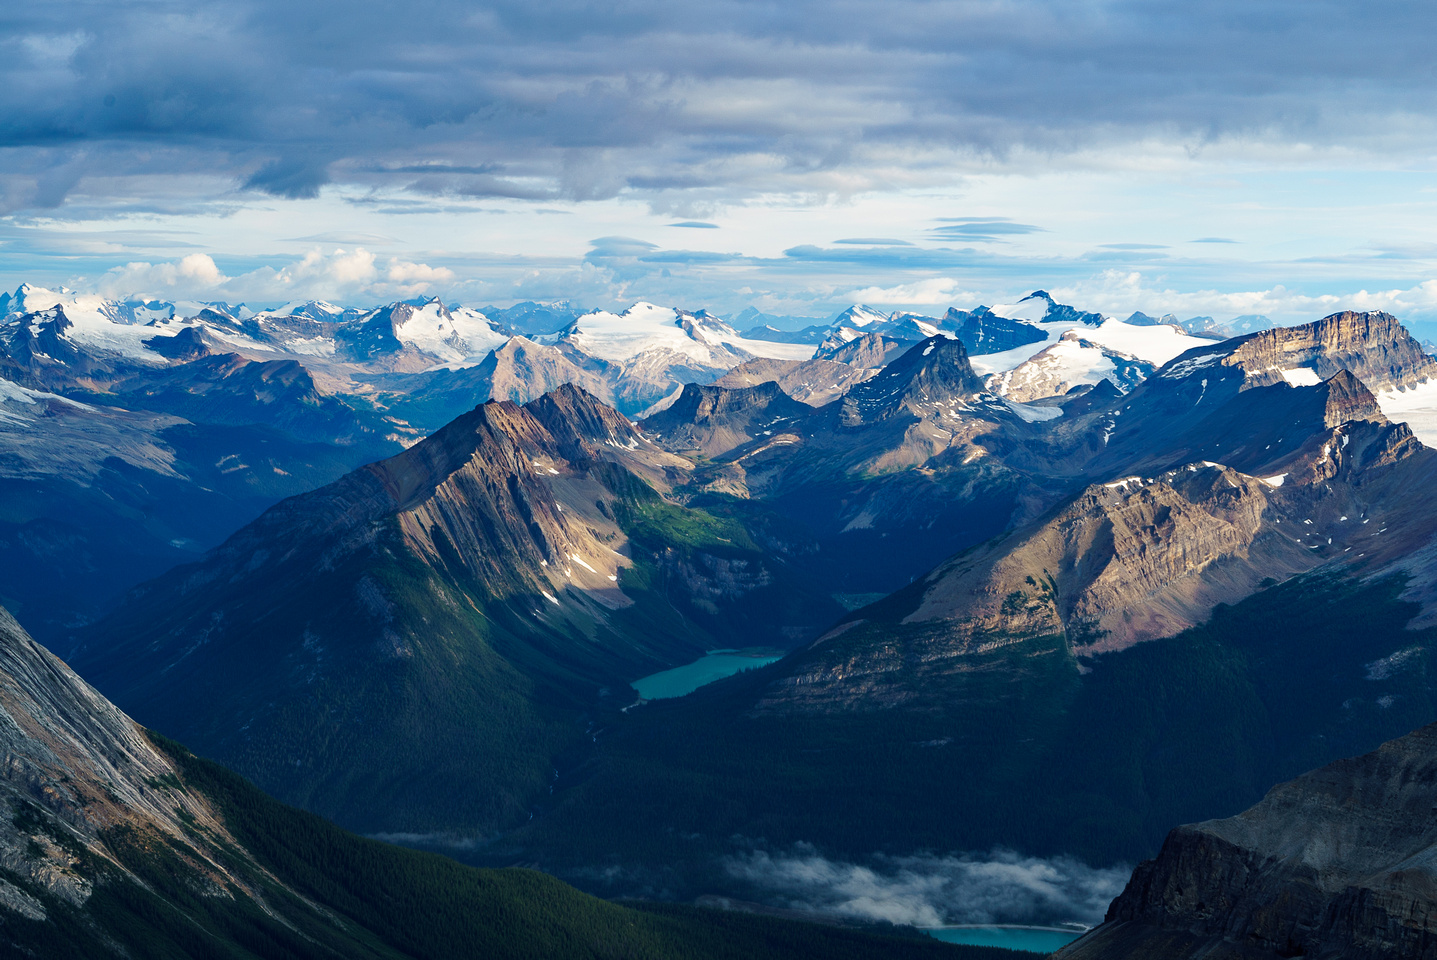 Summits include from L to R, Des Poilus, Yoho, Ogden, Collie, Niles, Balfour and Daly with many others less visible.